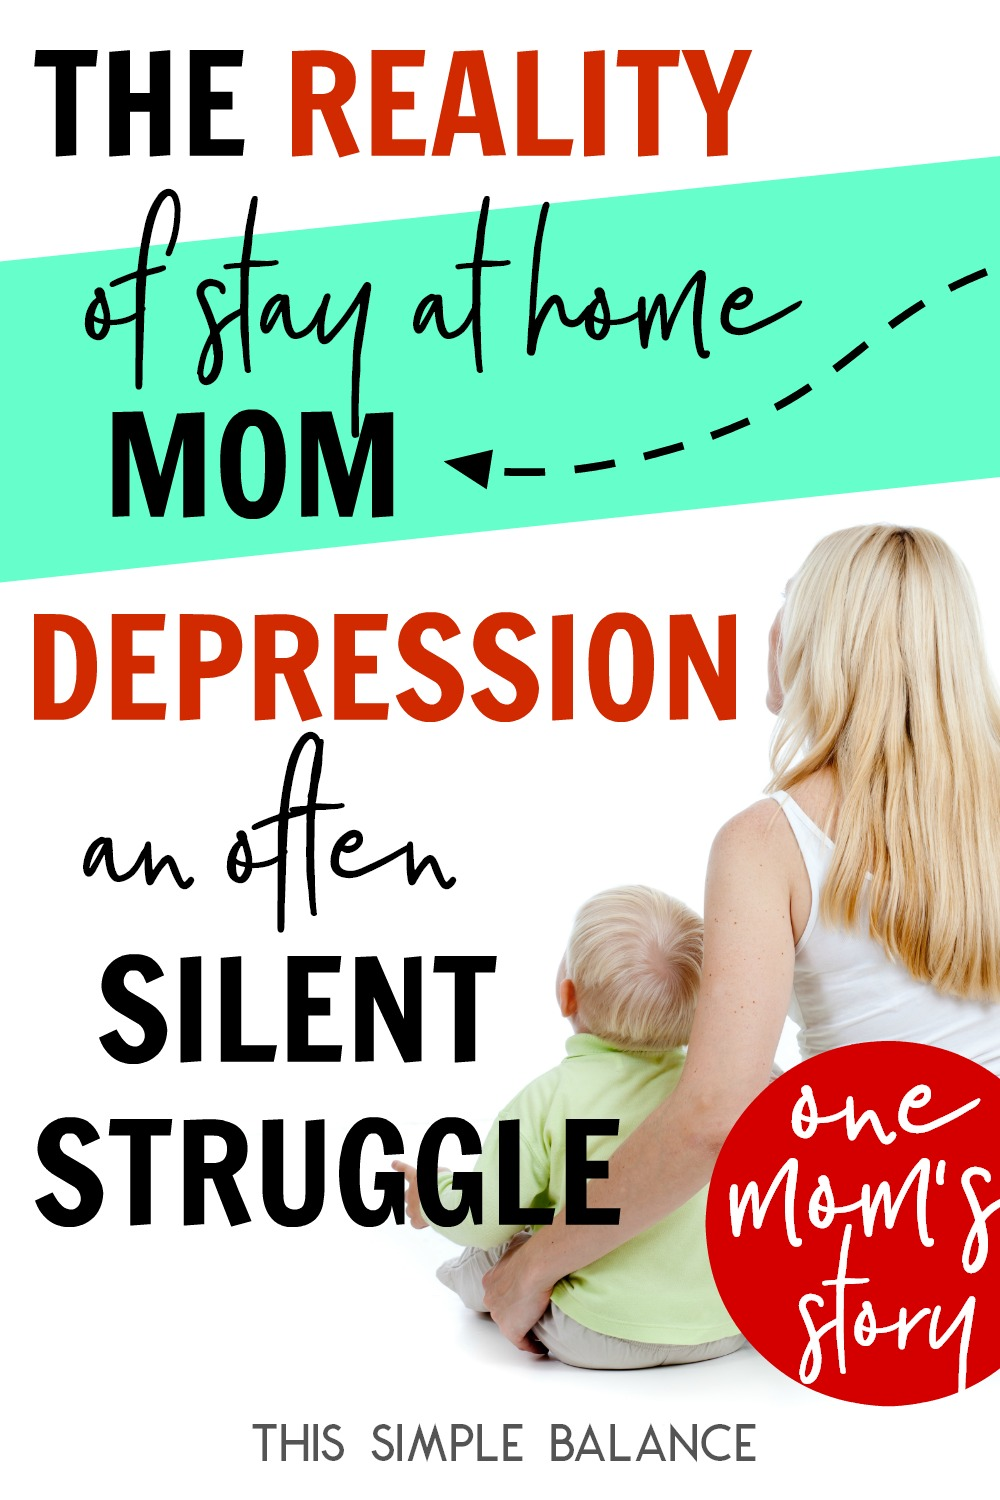 Stay at home mom depression isn't talked about often enough or loudly enough. One mom shares her story and how she chose to fight it.